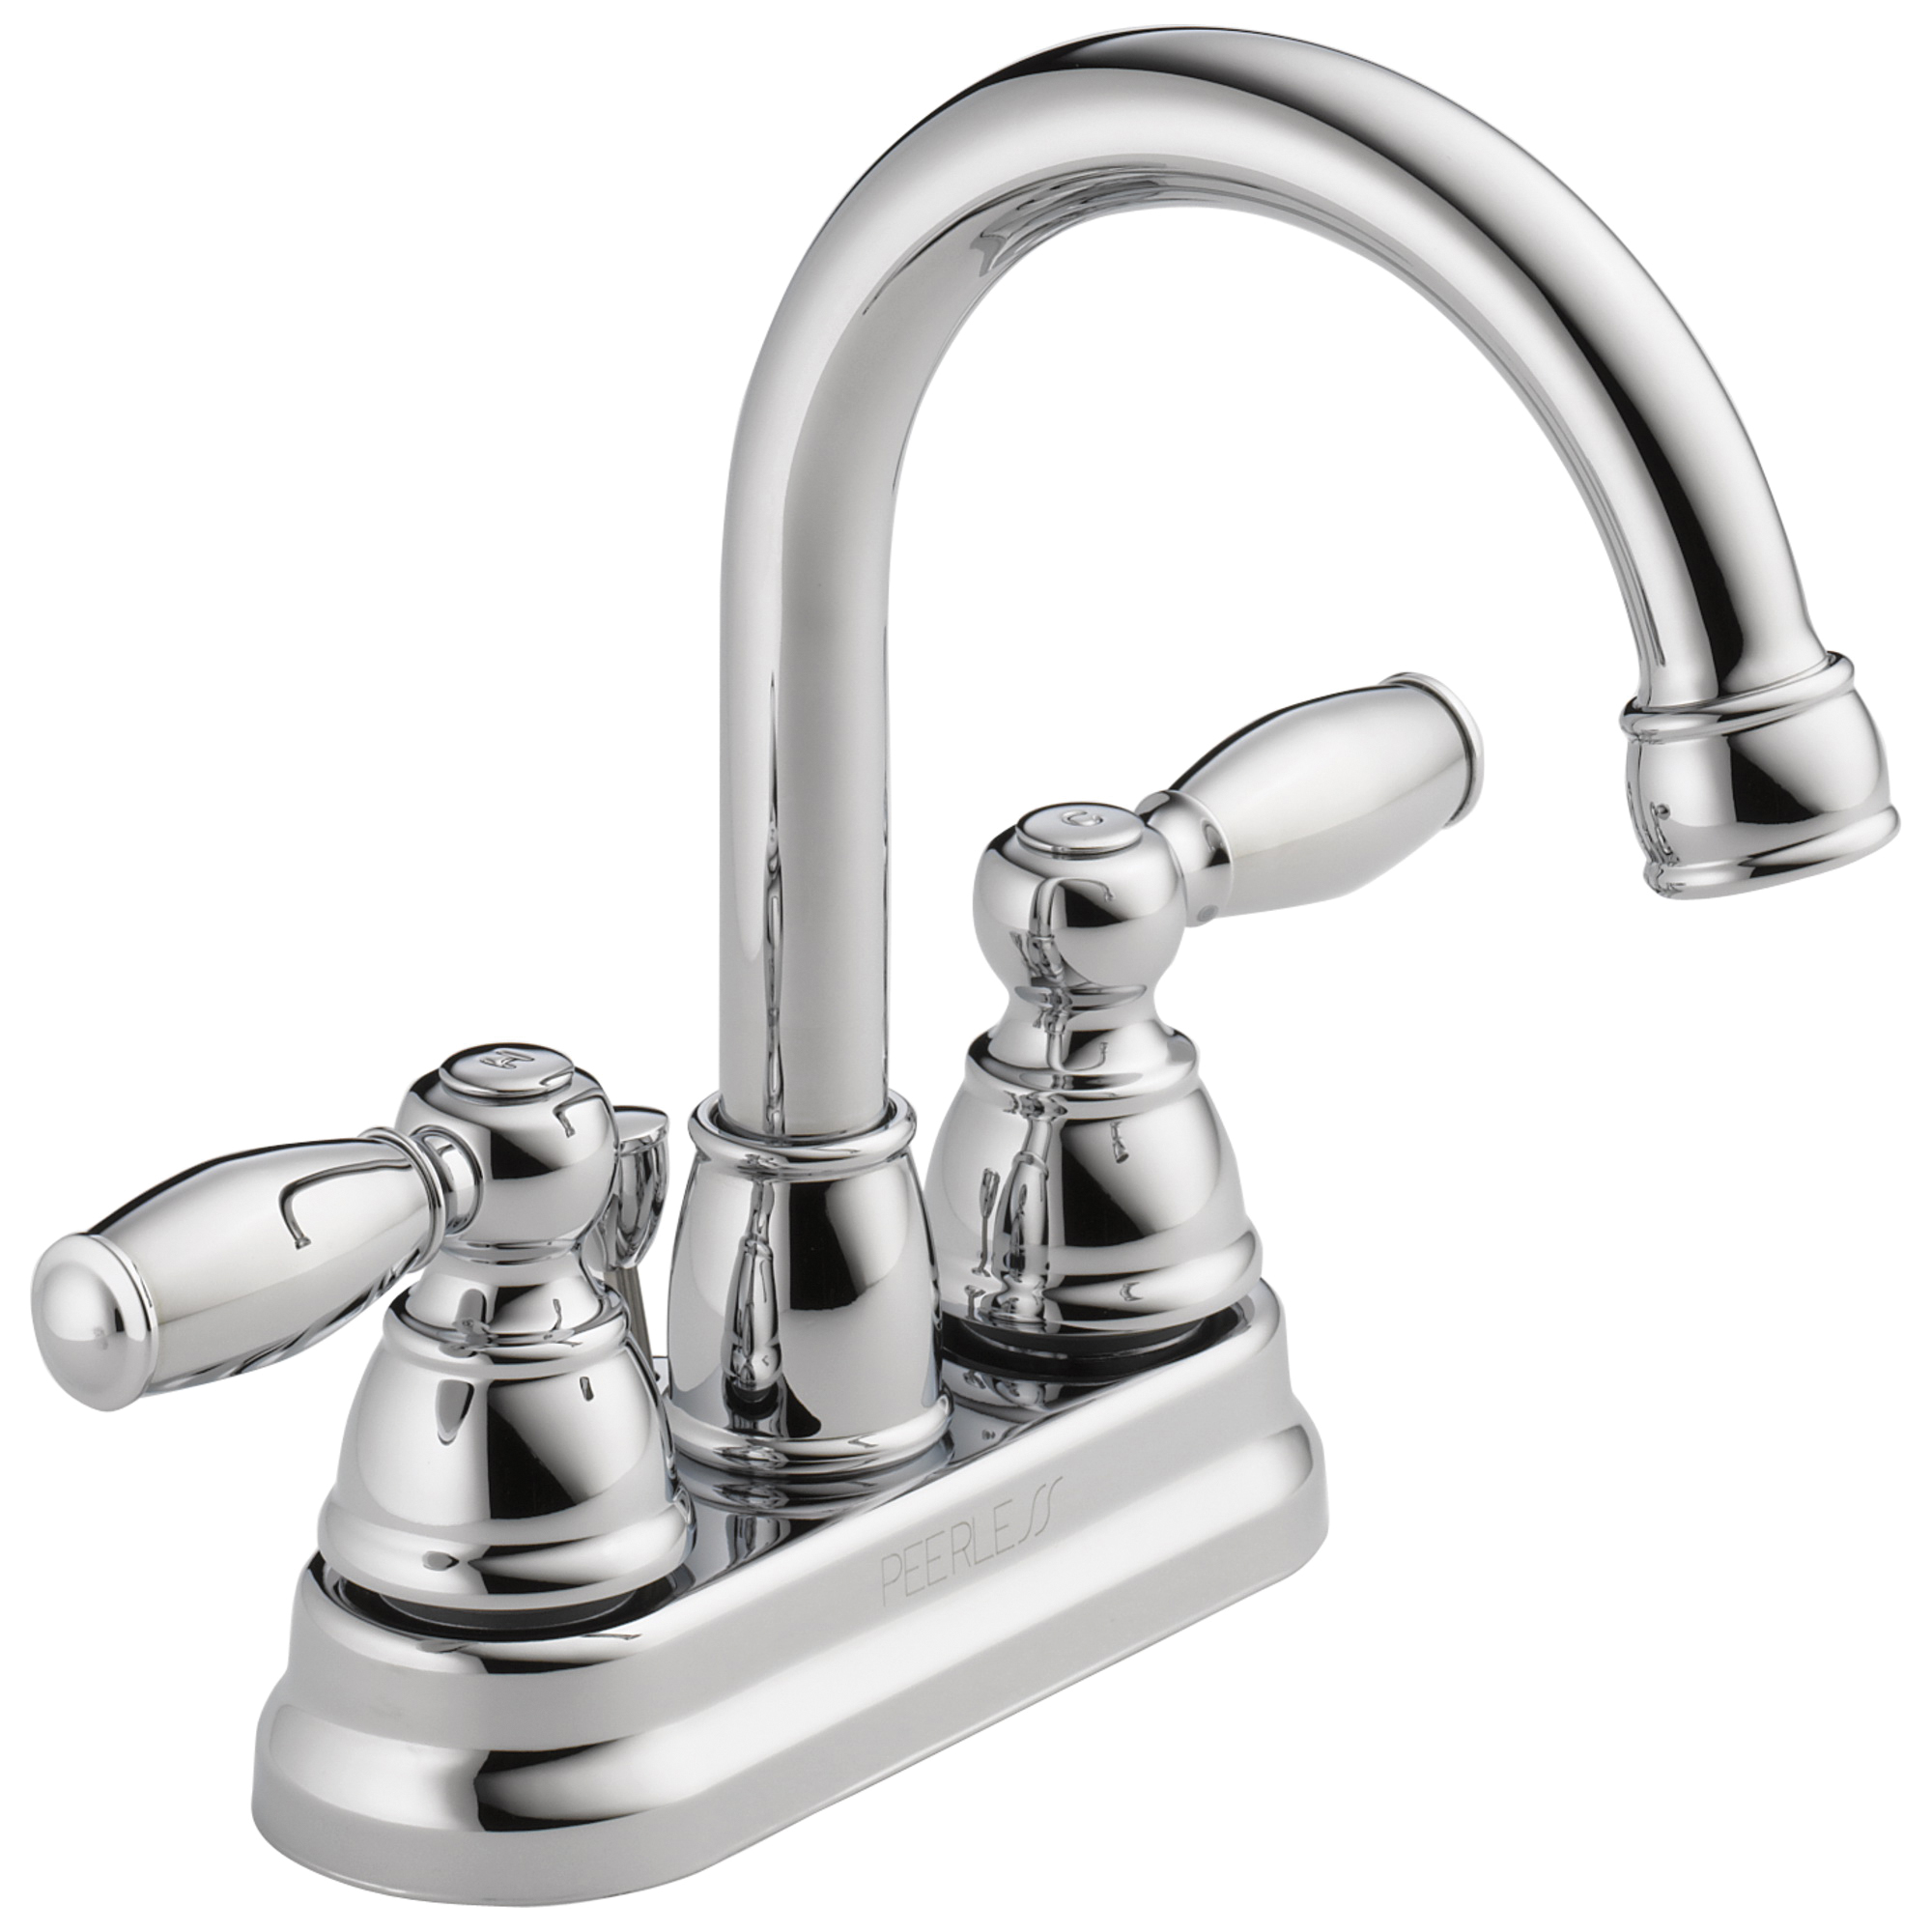 Peerless® P299685LF Centerset Lavatory Faucet, Chrome Plated, 2 Handles, Pop-Up Drain, 1.2 gpm